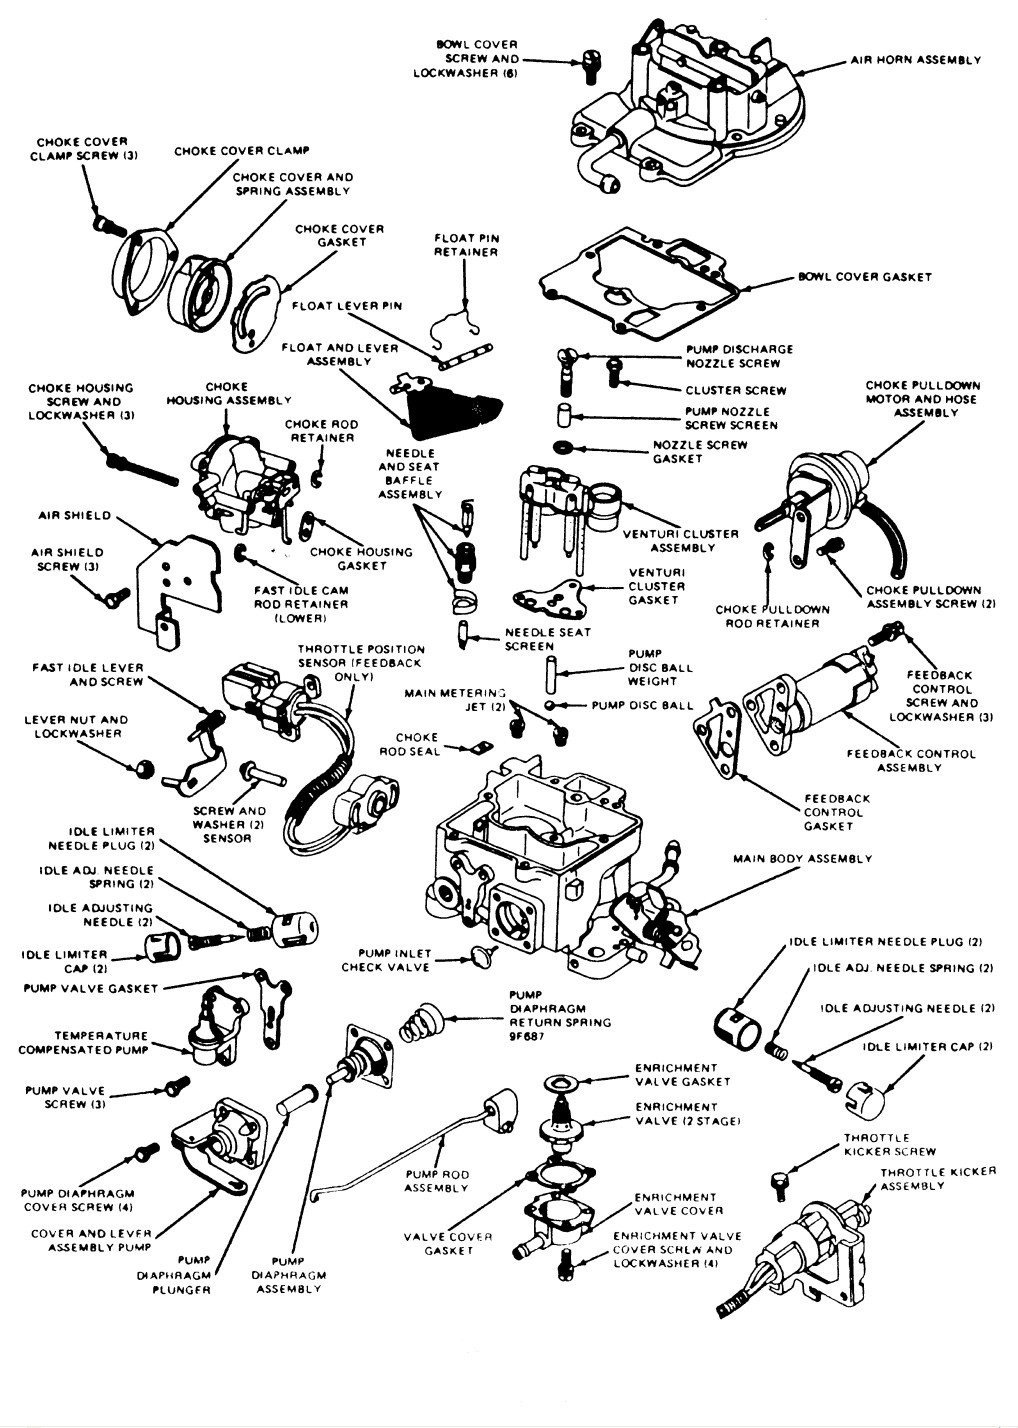 how do i go about adjusting the carb on a 1984 ranger 2 8